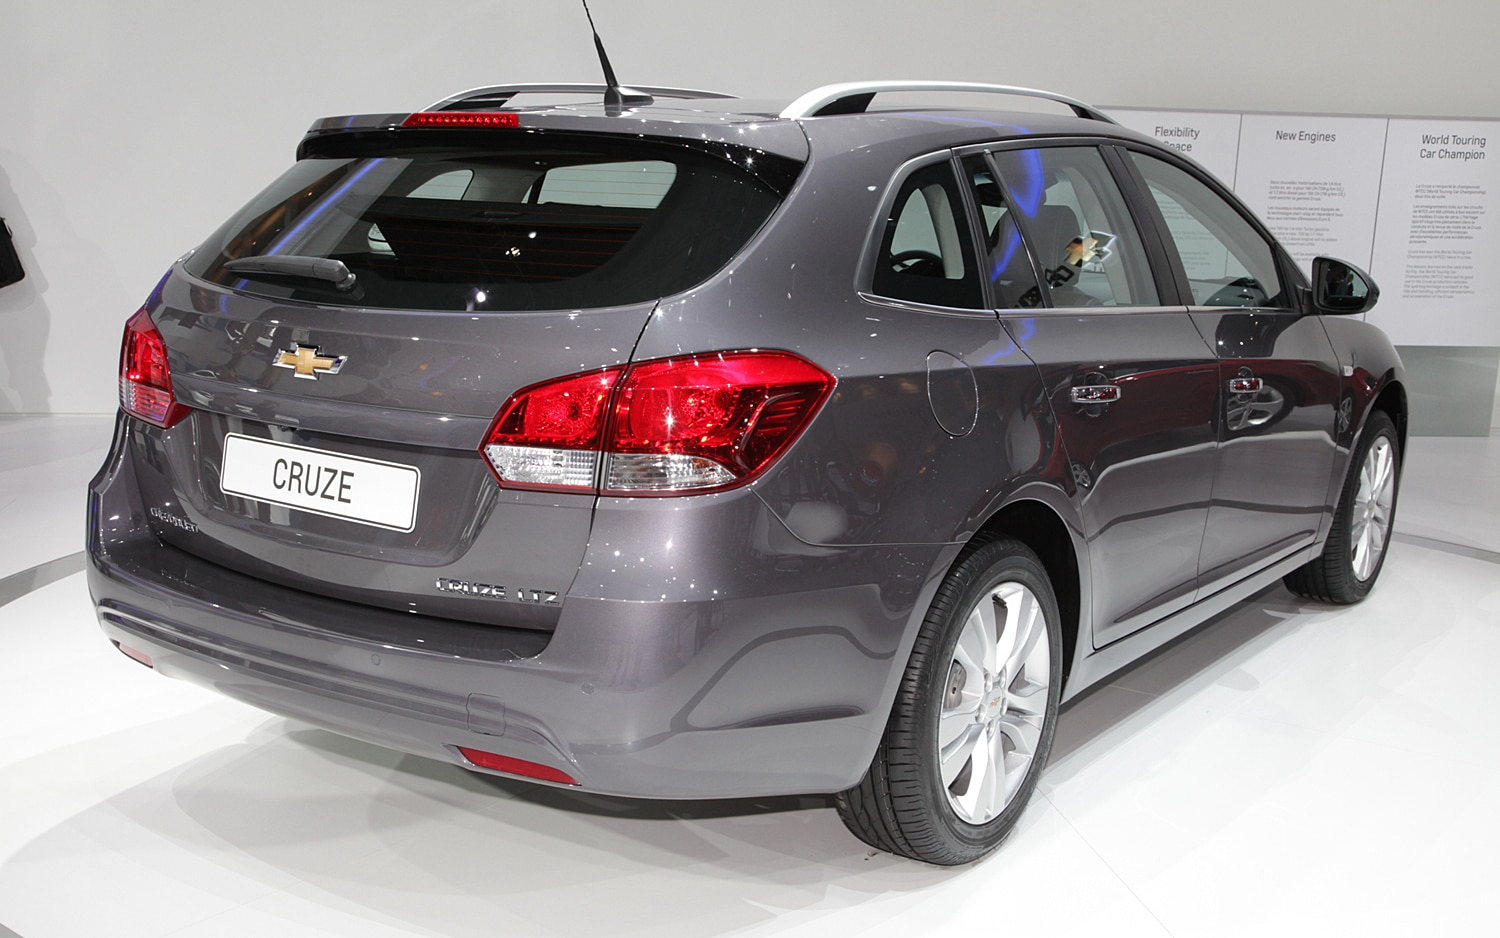 geneva 2012 chevrolet cruze wagon shows off tweaked face larger trunk. Black Bedroom Furniture Sets. Home Design Ideas